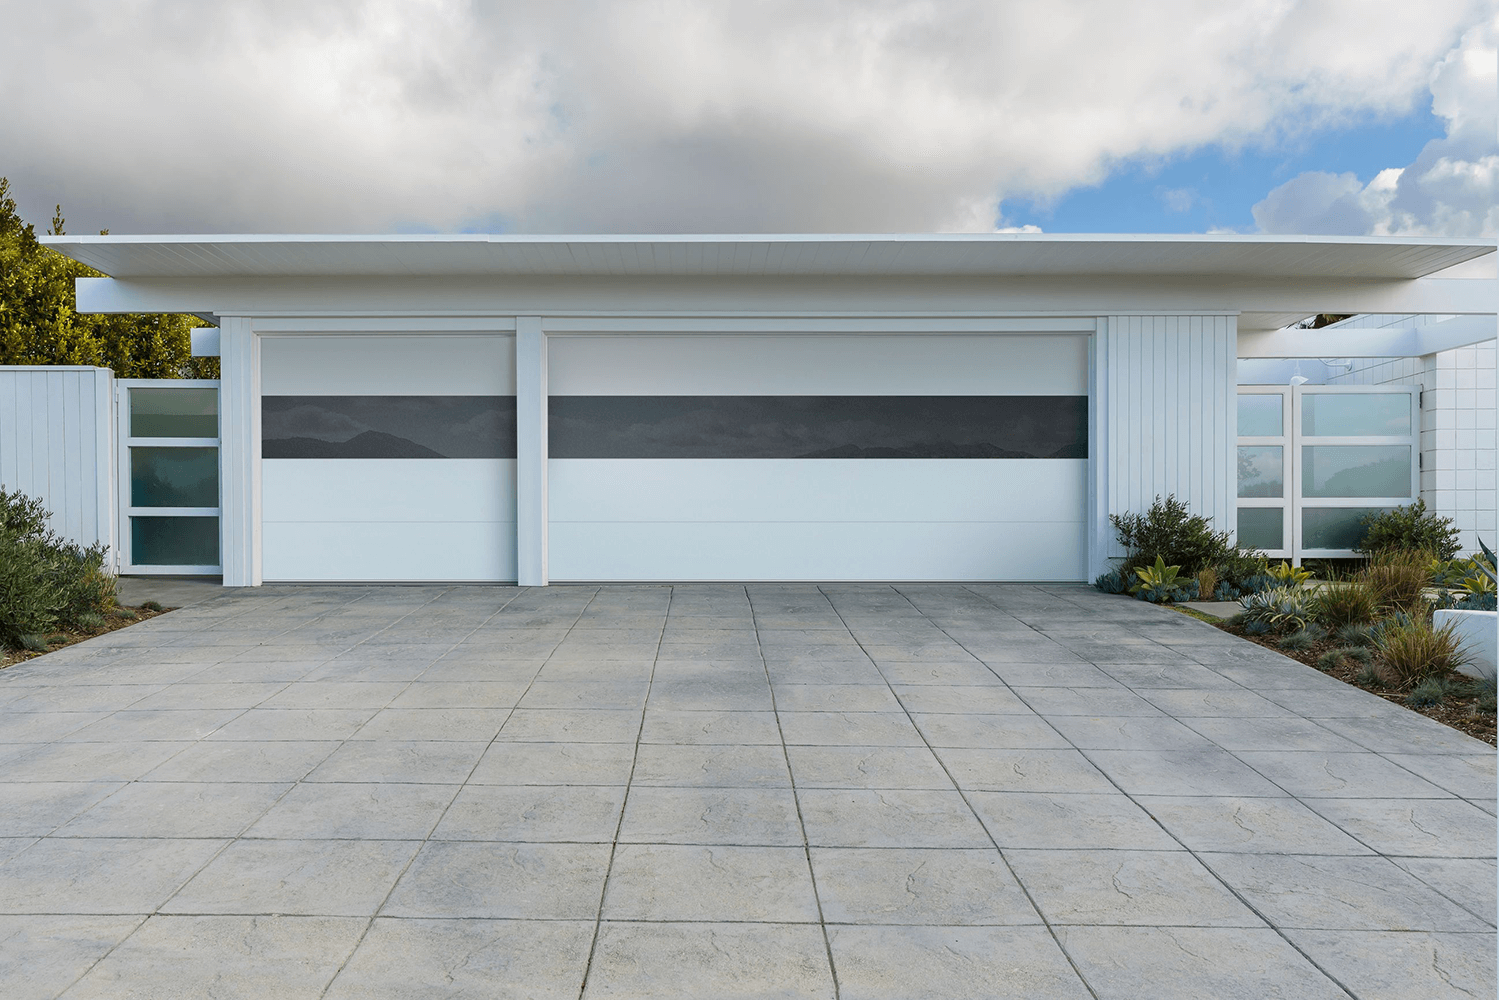 Sterling Garage Doors By C H I Overhead Doors In 2020 Garage Door Styles White Garage Doors Garage Doors